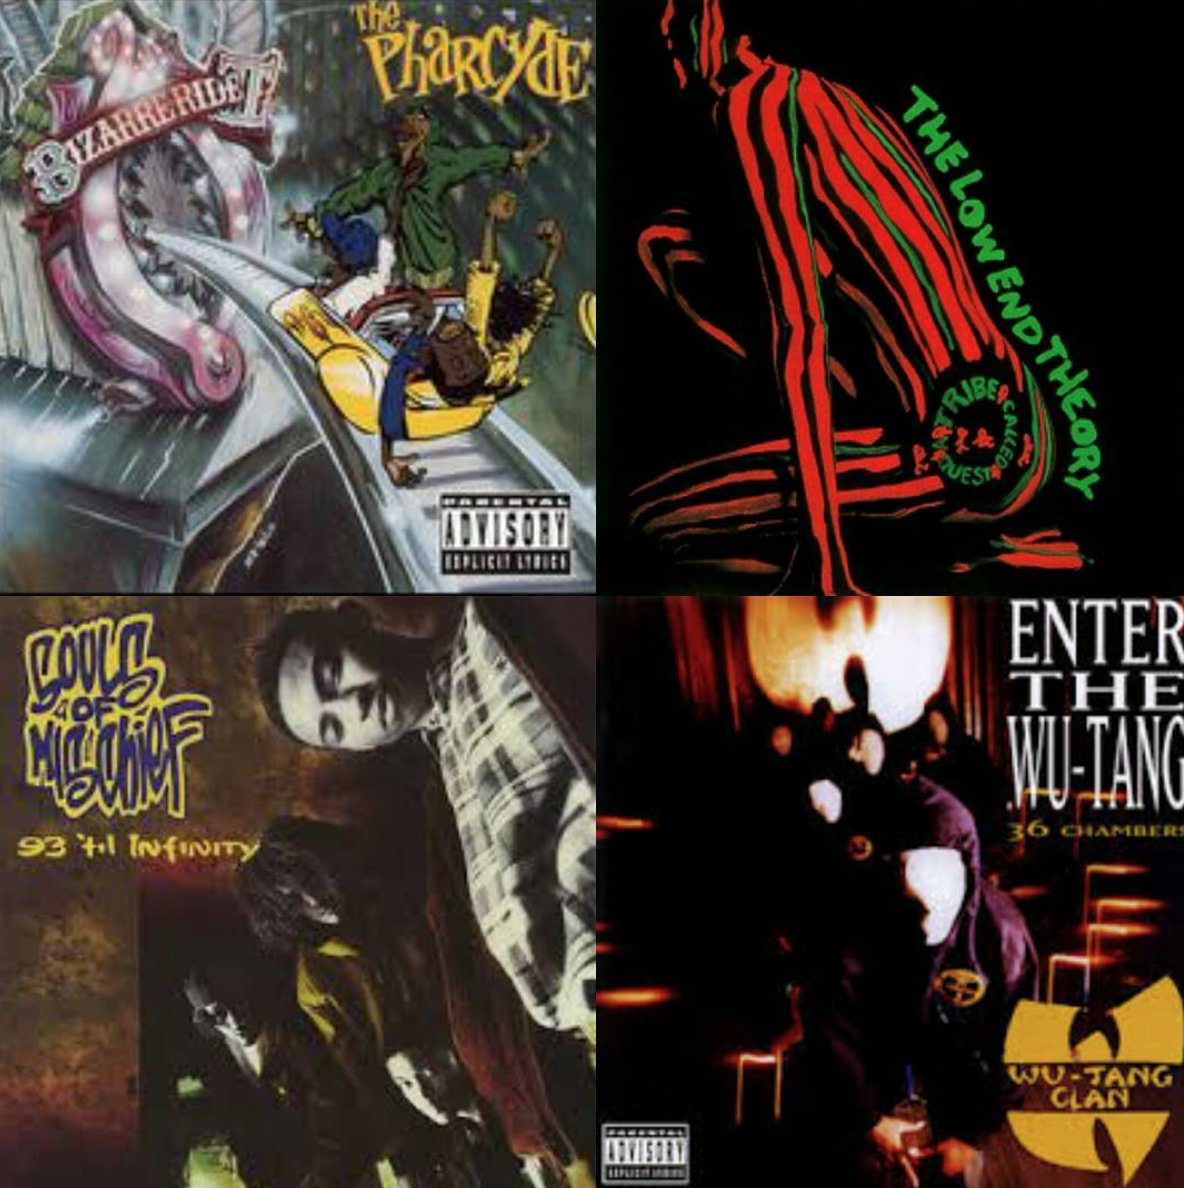 """These 4 albums shaped the way I look at hip hop."" via @freshlydipped - RT if u agree #WaxWednesday #ThePharcyde https://t.co/mH6aPAAGYt"